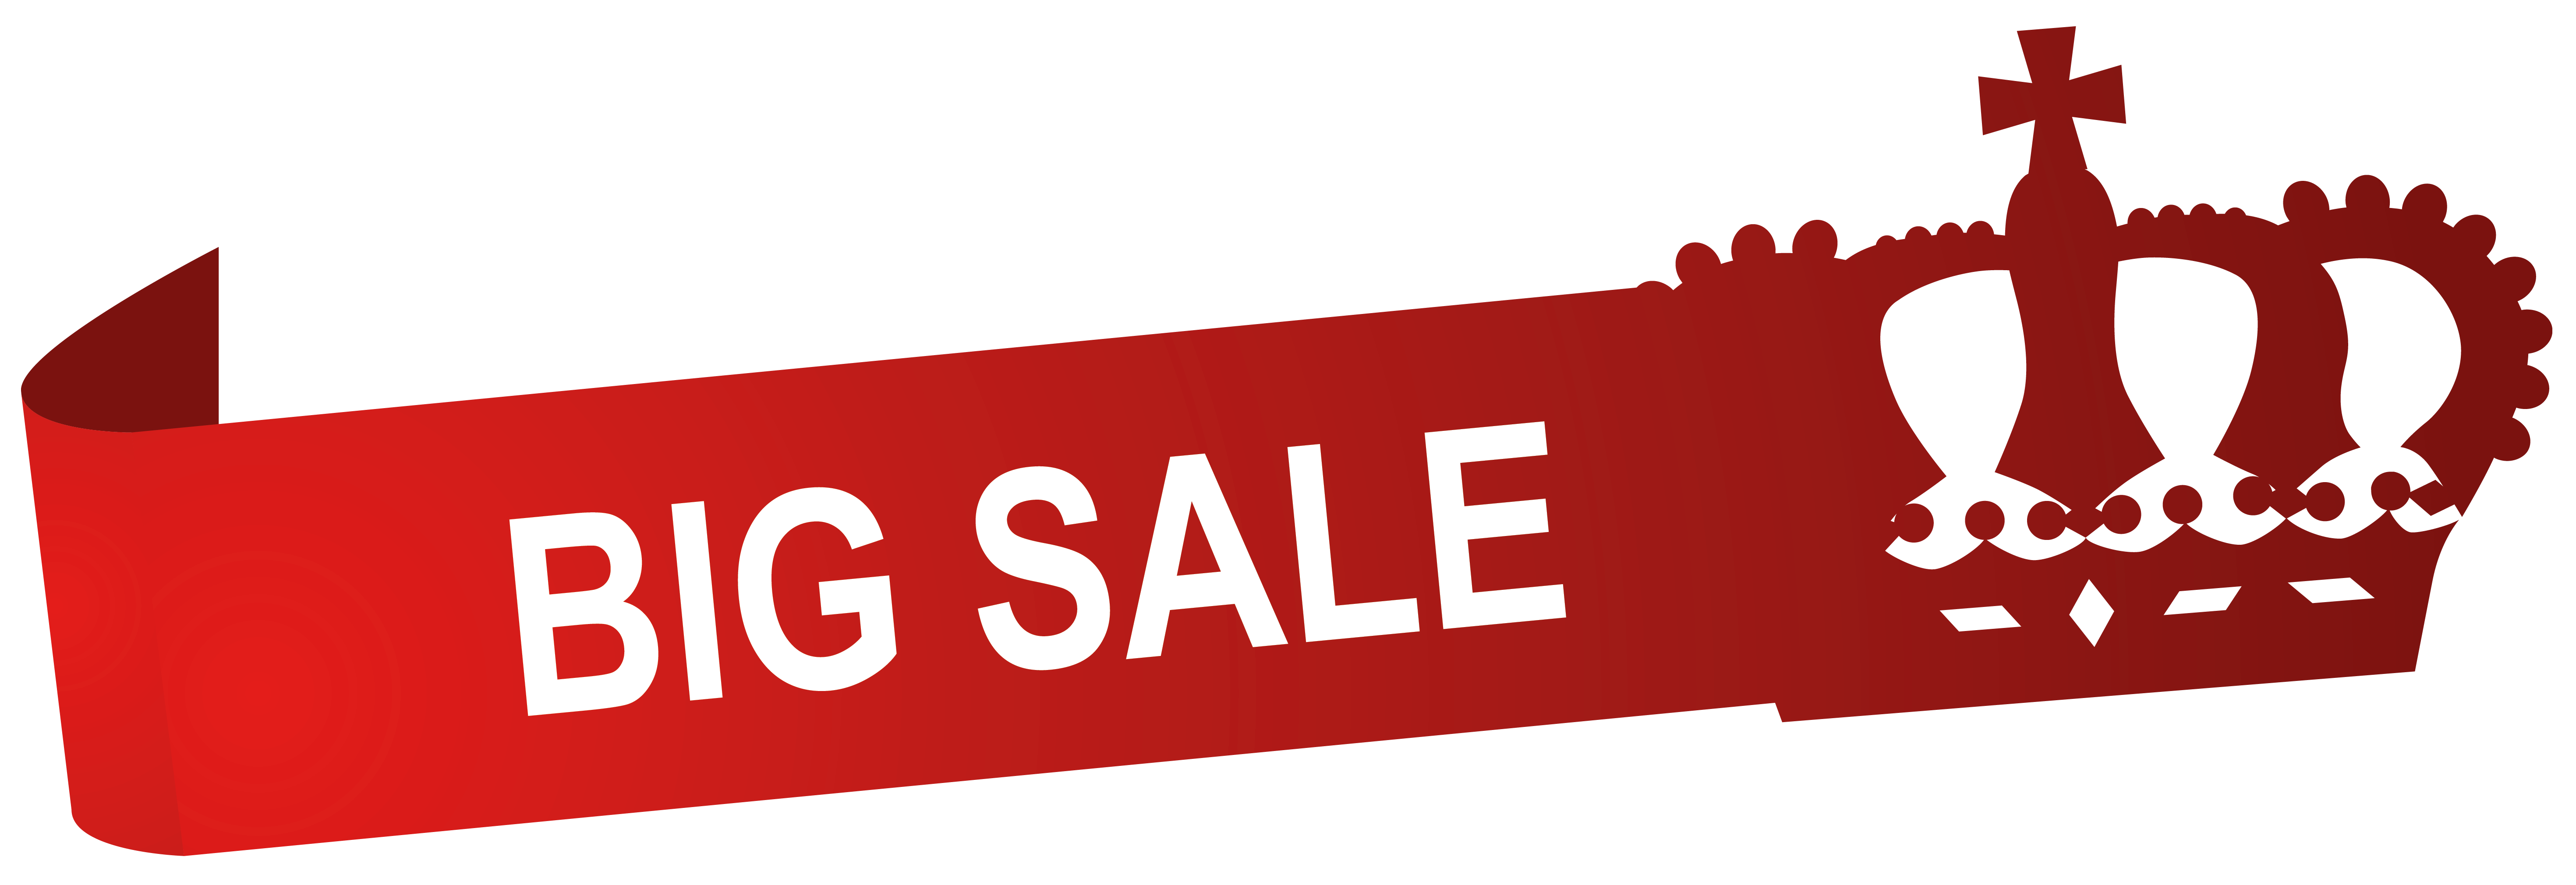 Sale Png Image PNG Image